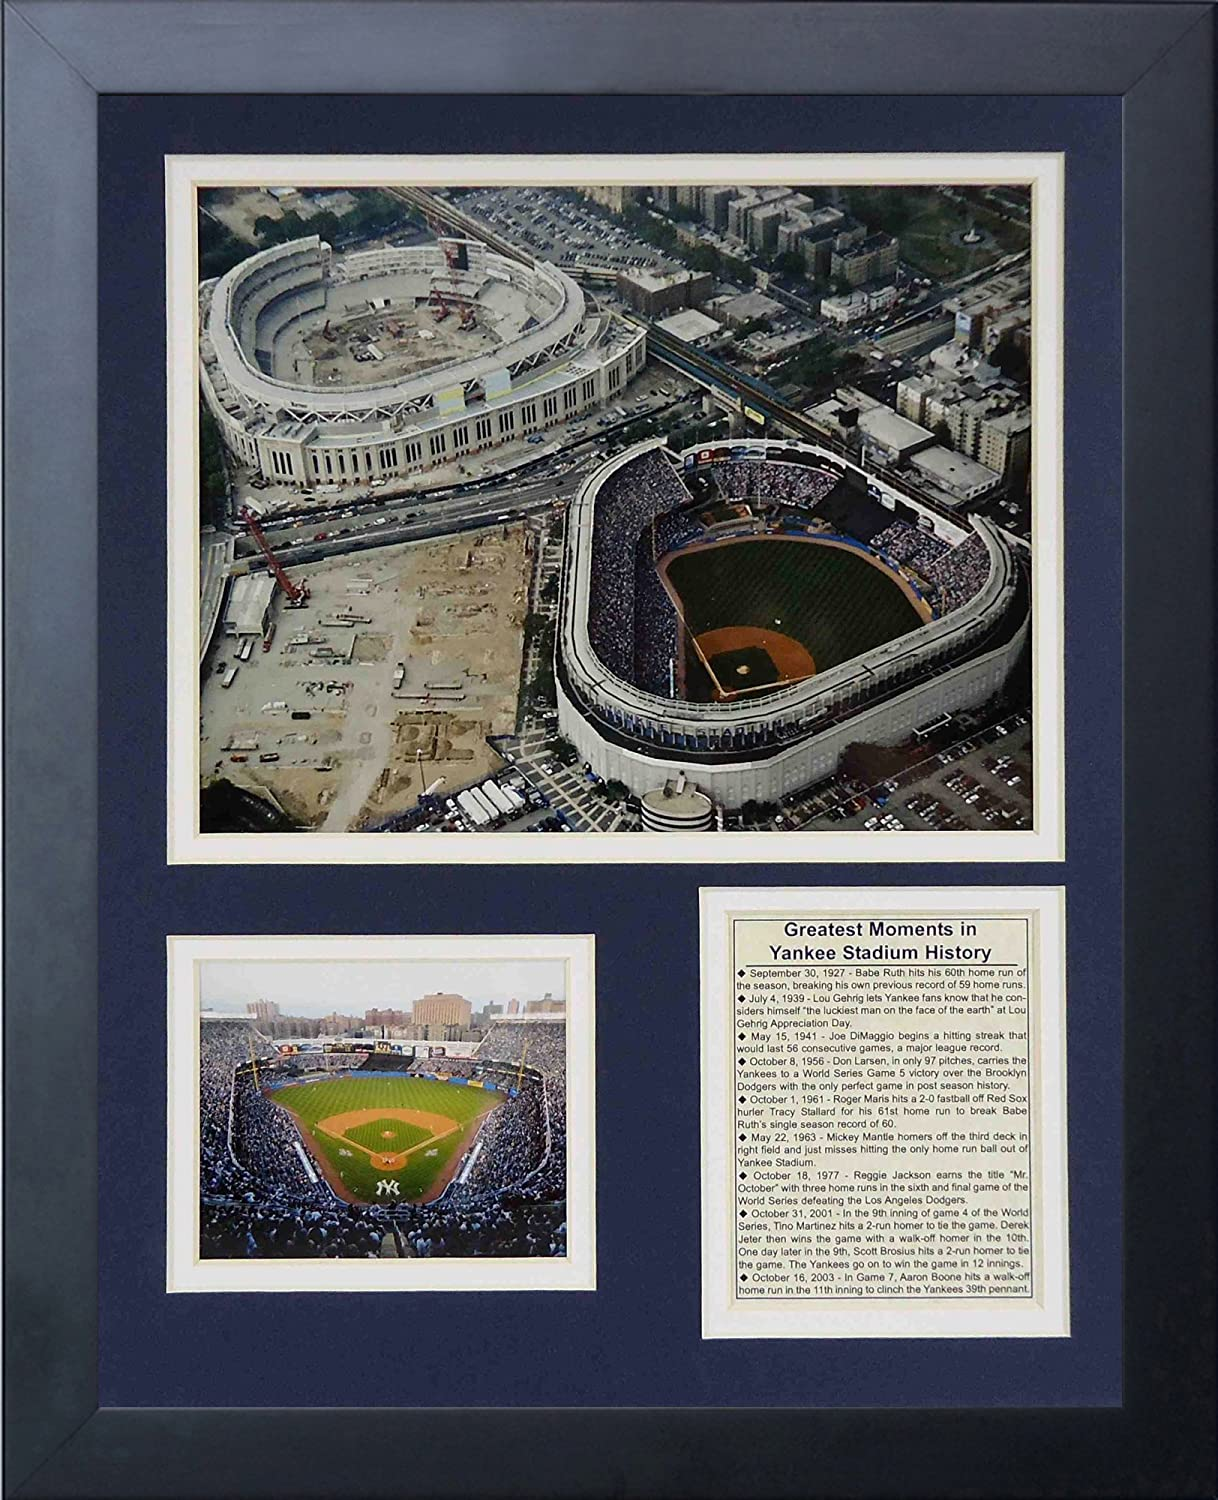 Legends Never Die Yankee Stadium Old and New Construction Framed Photo Collage 11x14-Inch